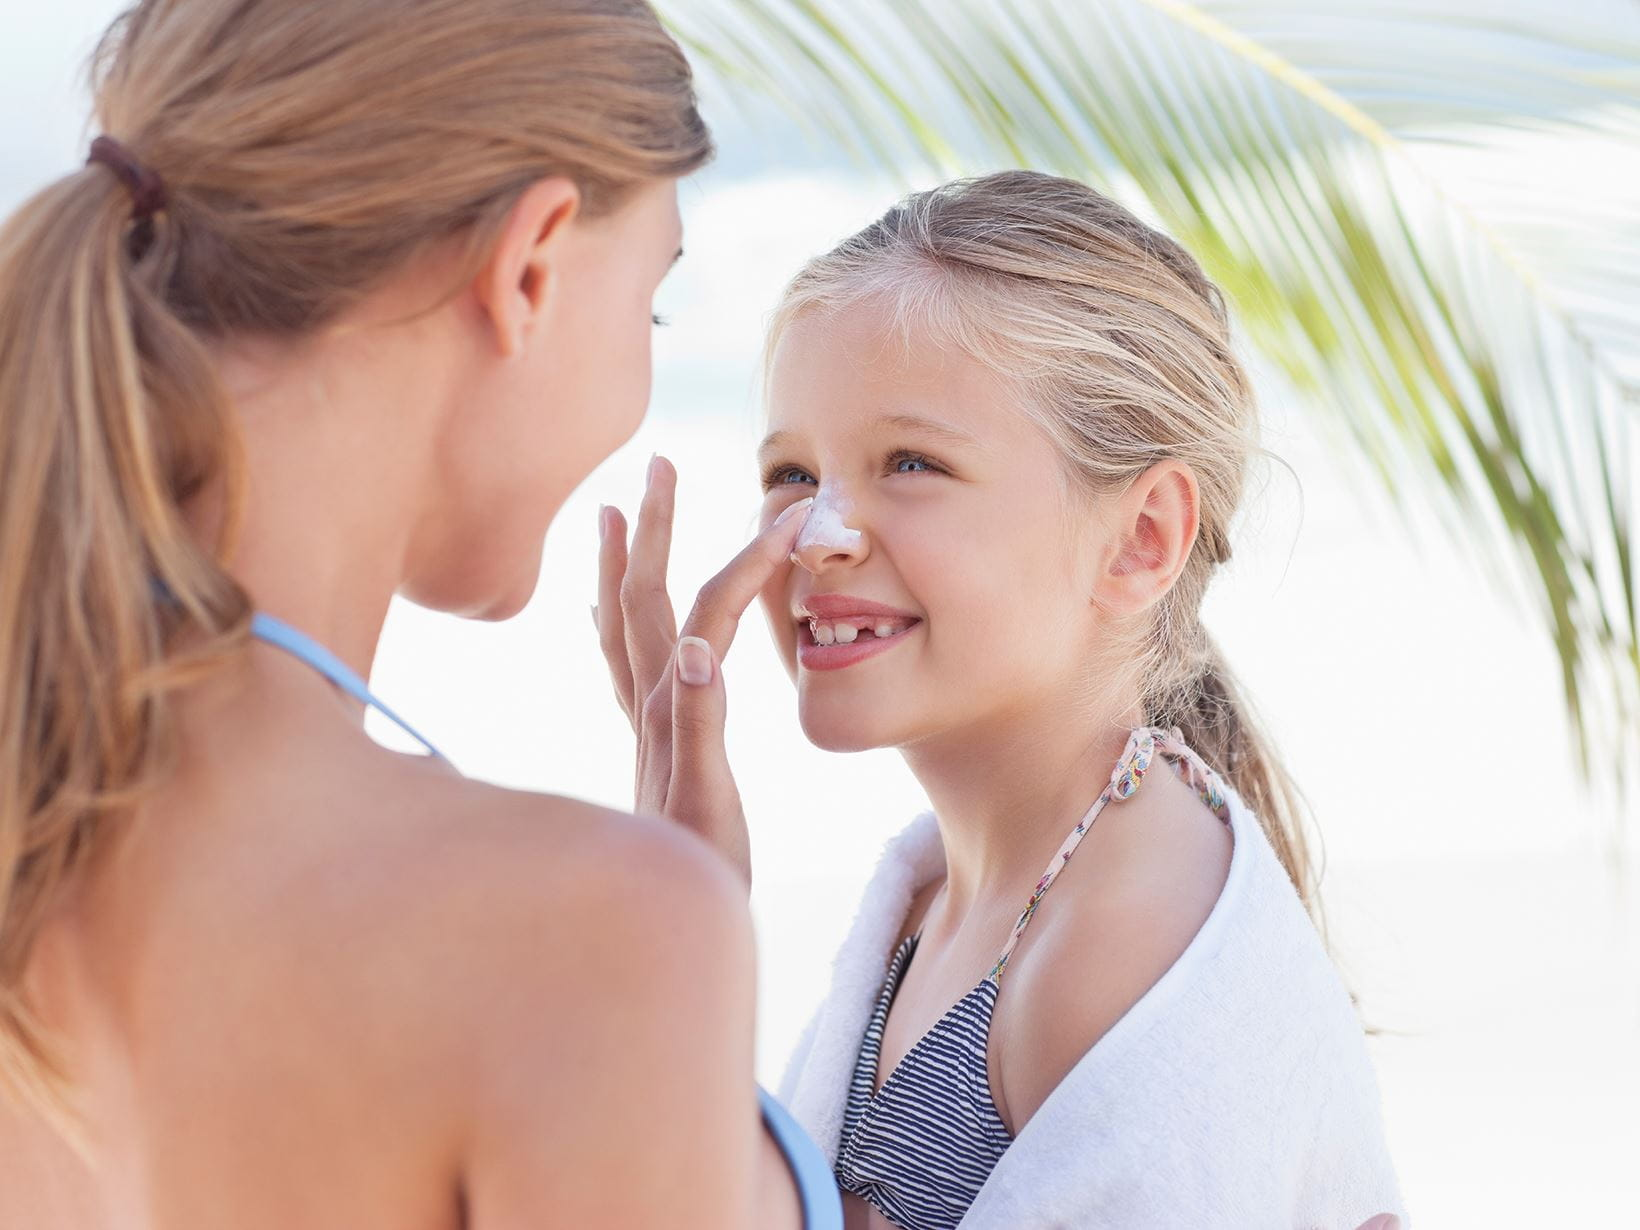 mother and daughter applying sunscreen